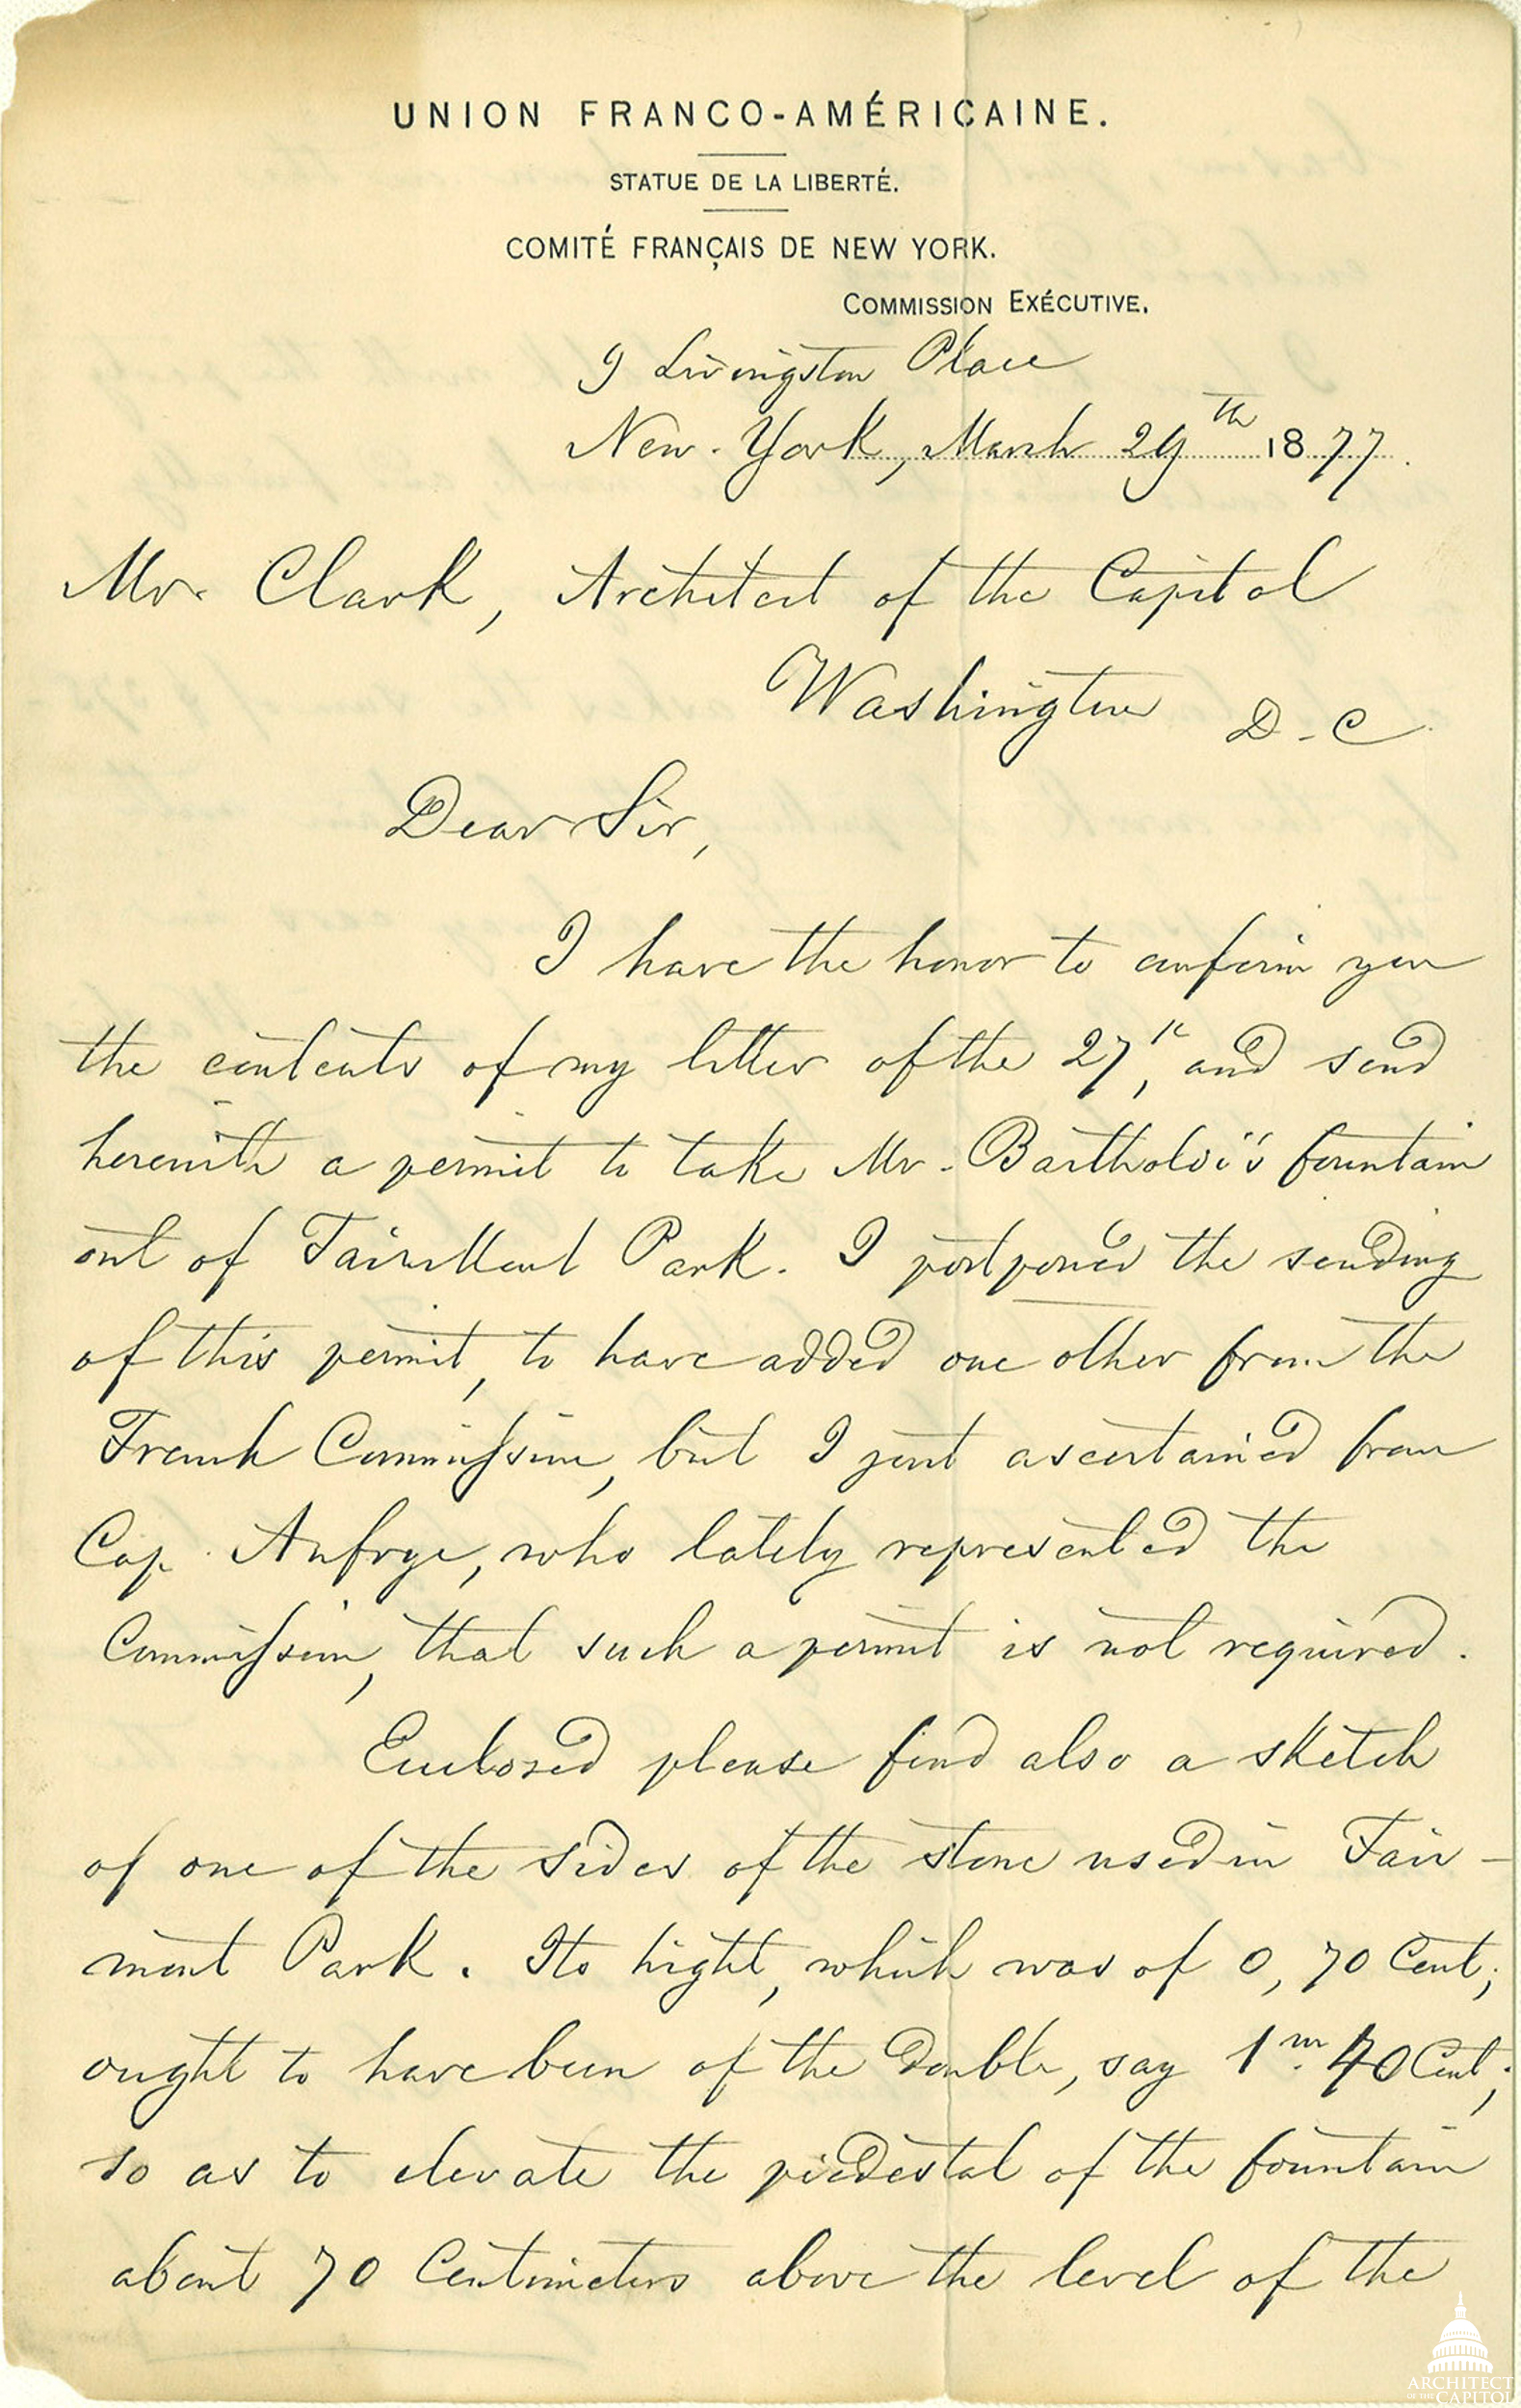 Click to enlarge and read the letter.